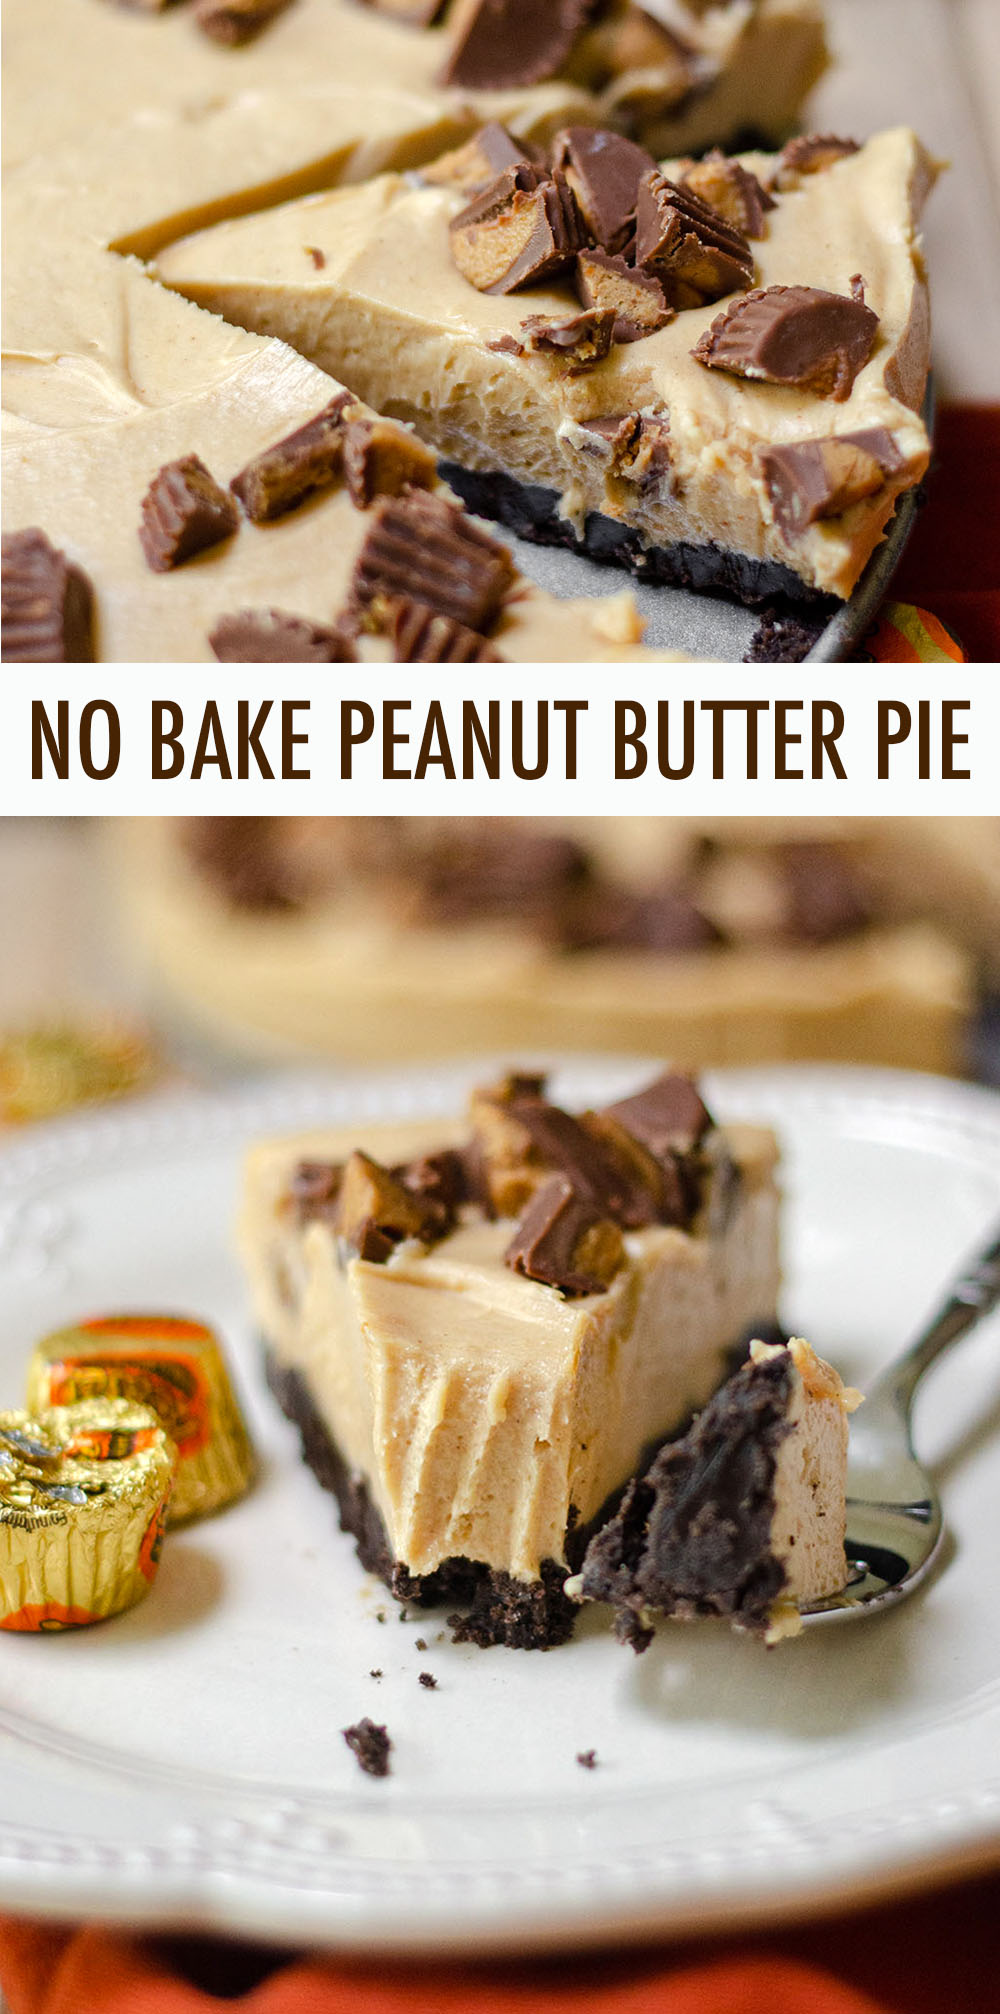 A light and creamy peanut butter filling atop a crushed Oreo crust. The chopped peanut butter cups on top seal the deal for a perfect no bake pie!